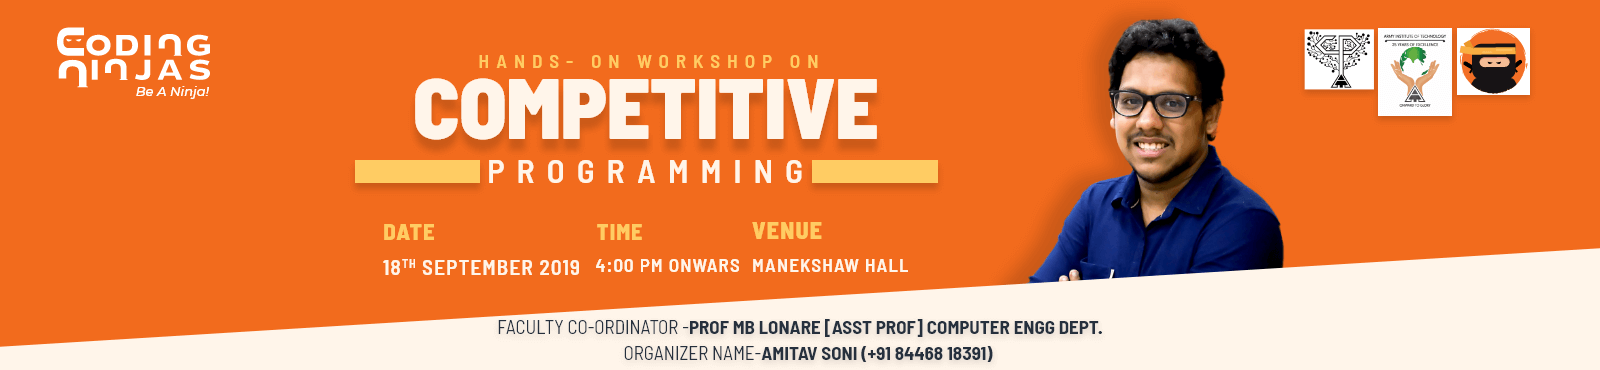 Competitive Hands on Session - Army Institute,Pune